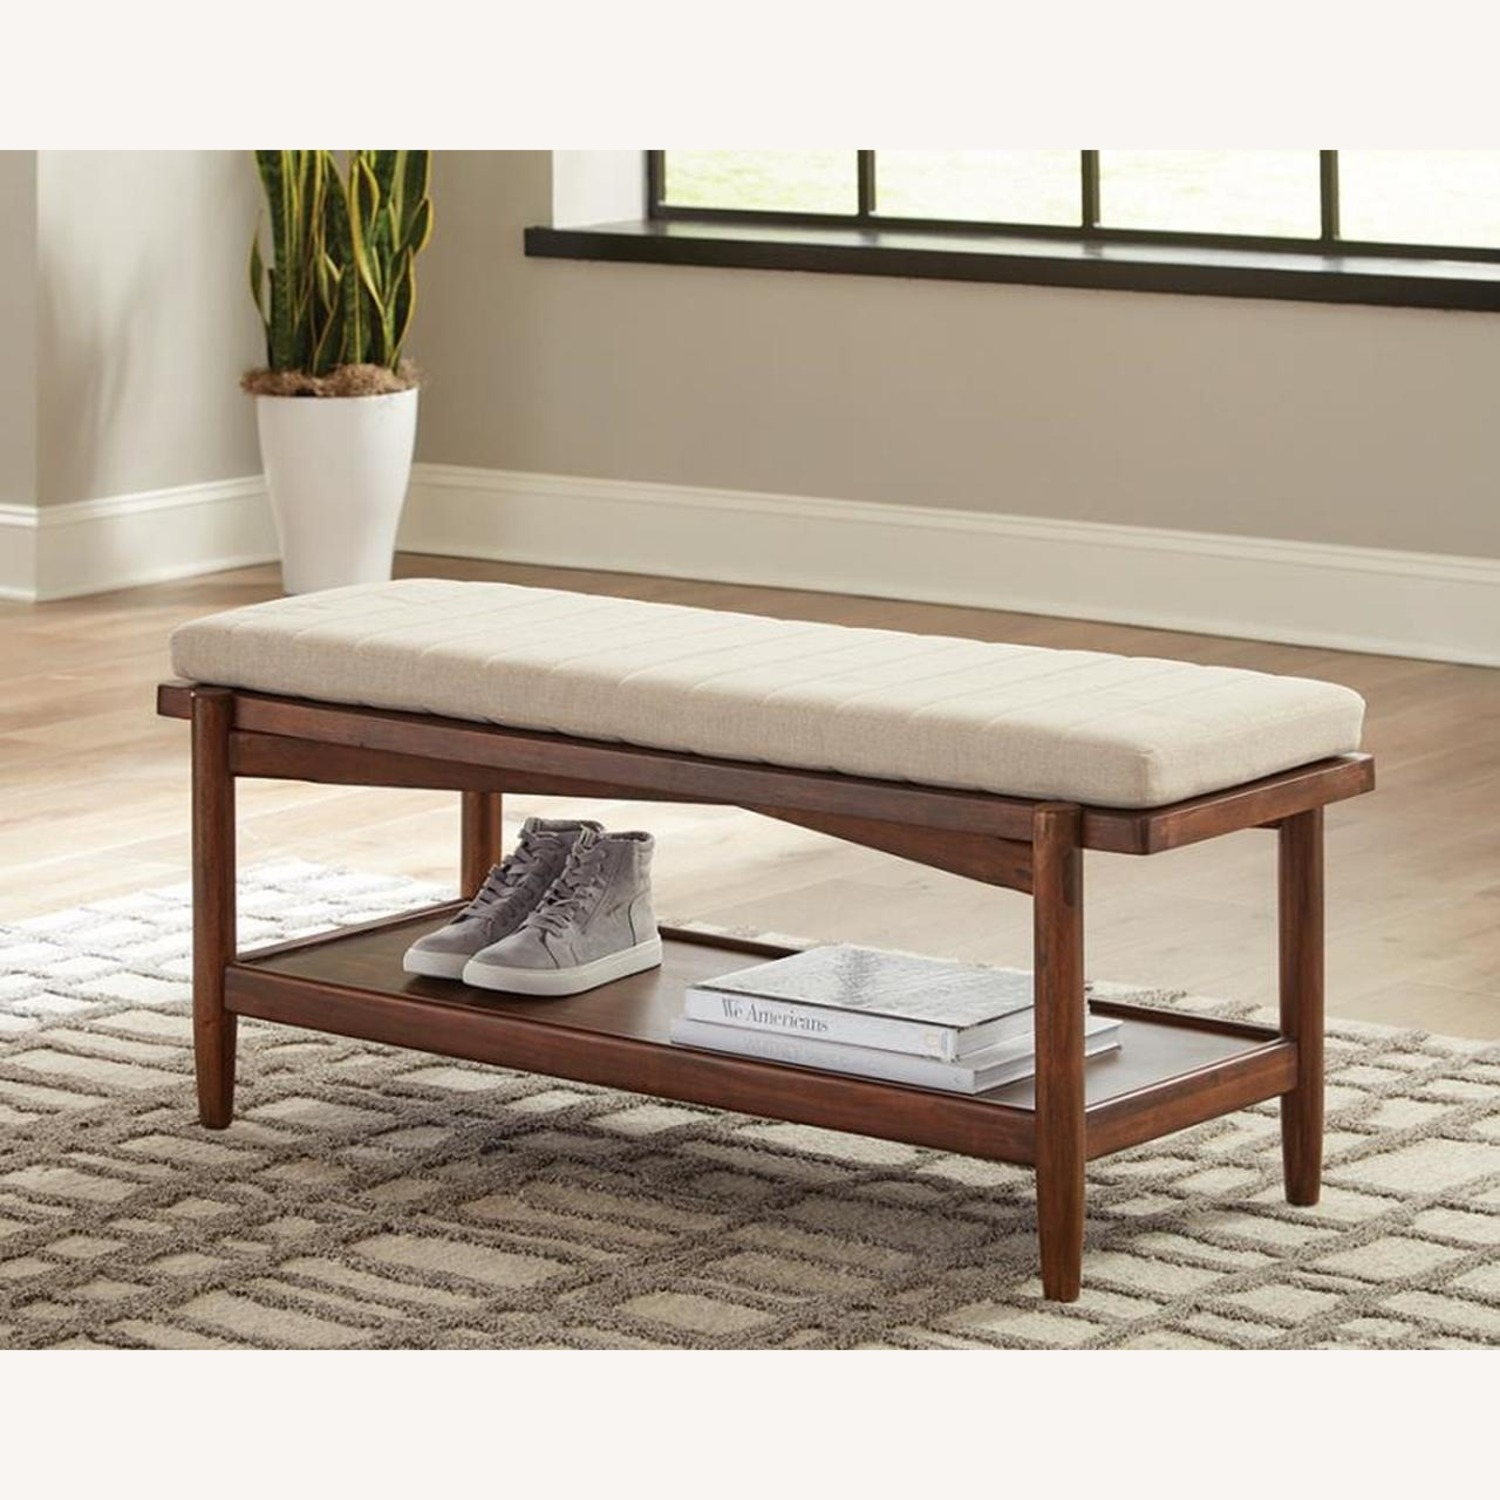 Modern Bench W/ Beige Fabric Seat Cushion - image-2